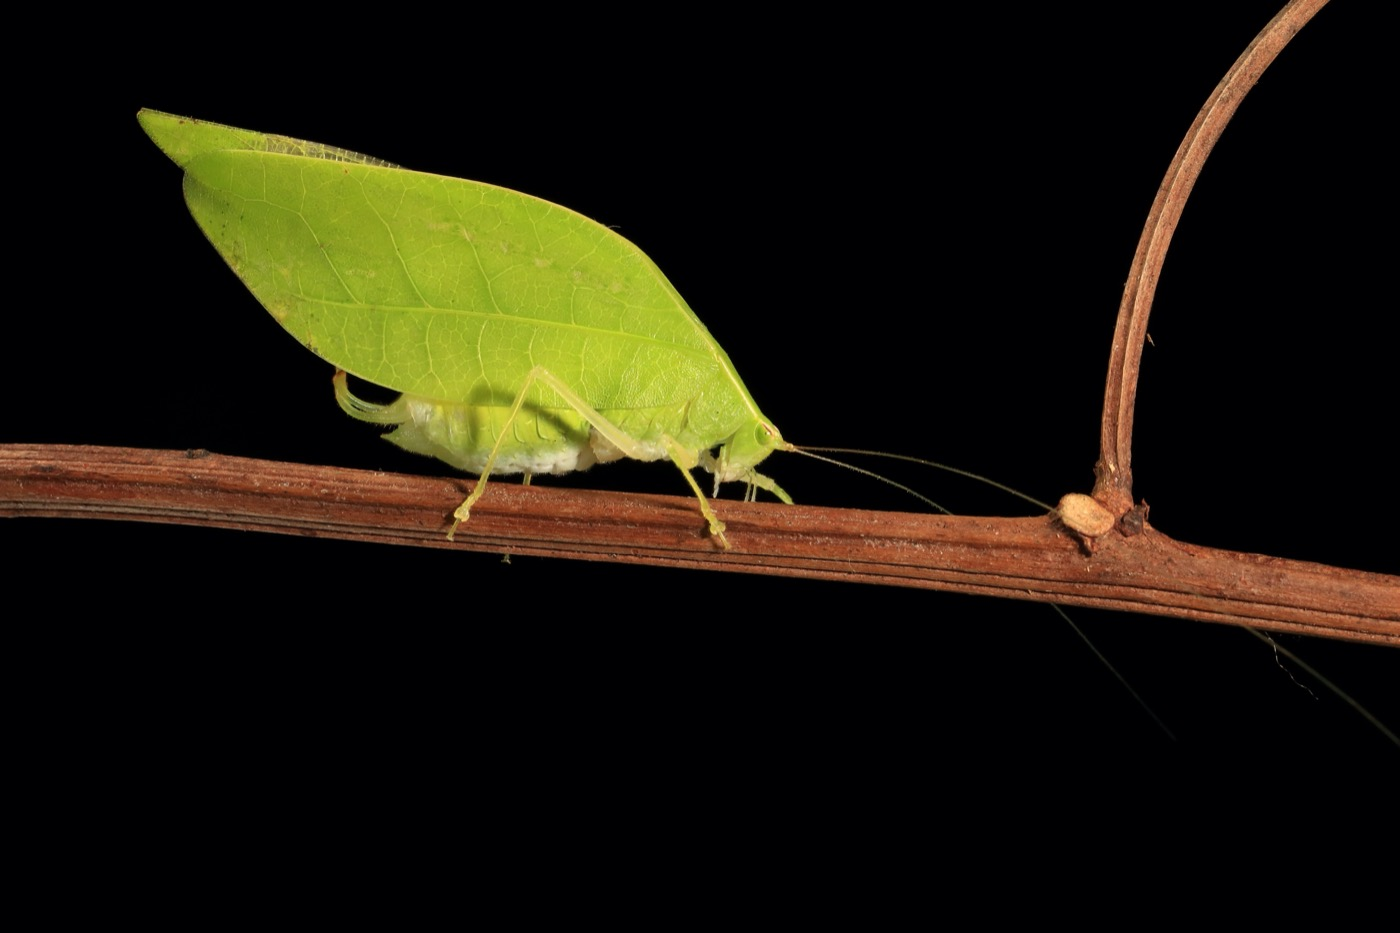 a large bright green insect that looks like a leaf